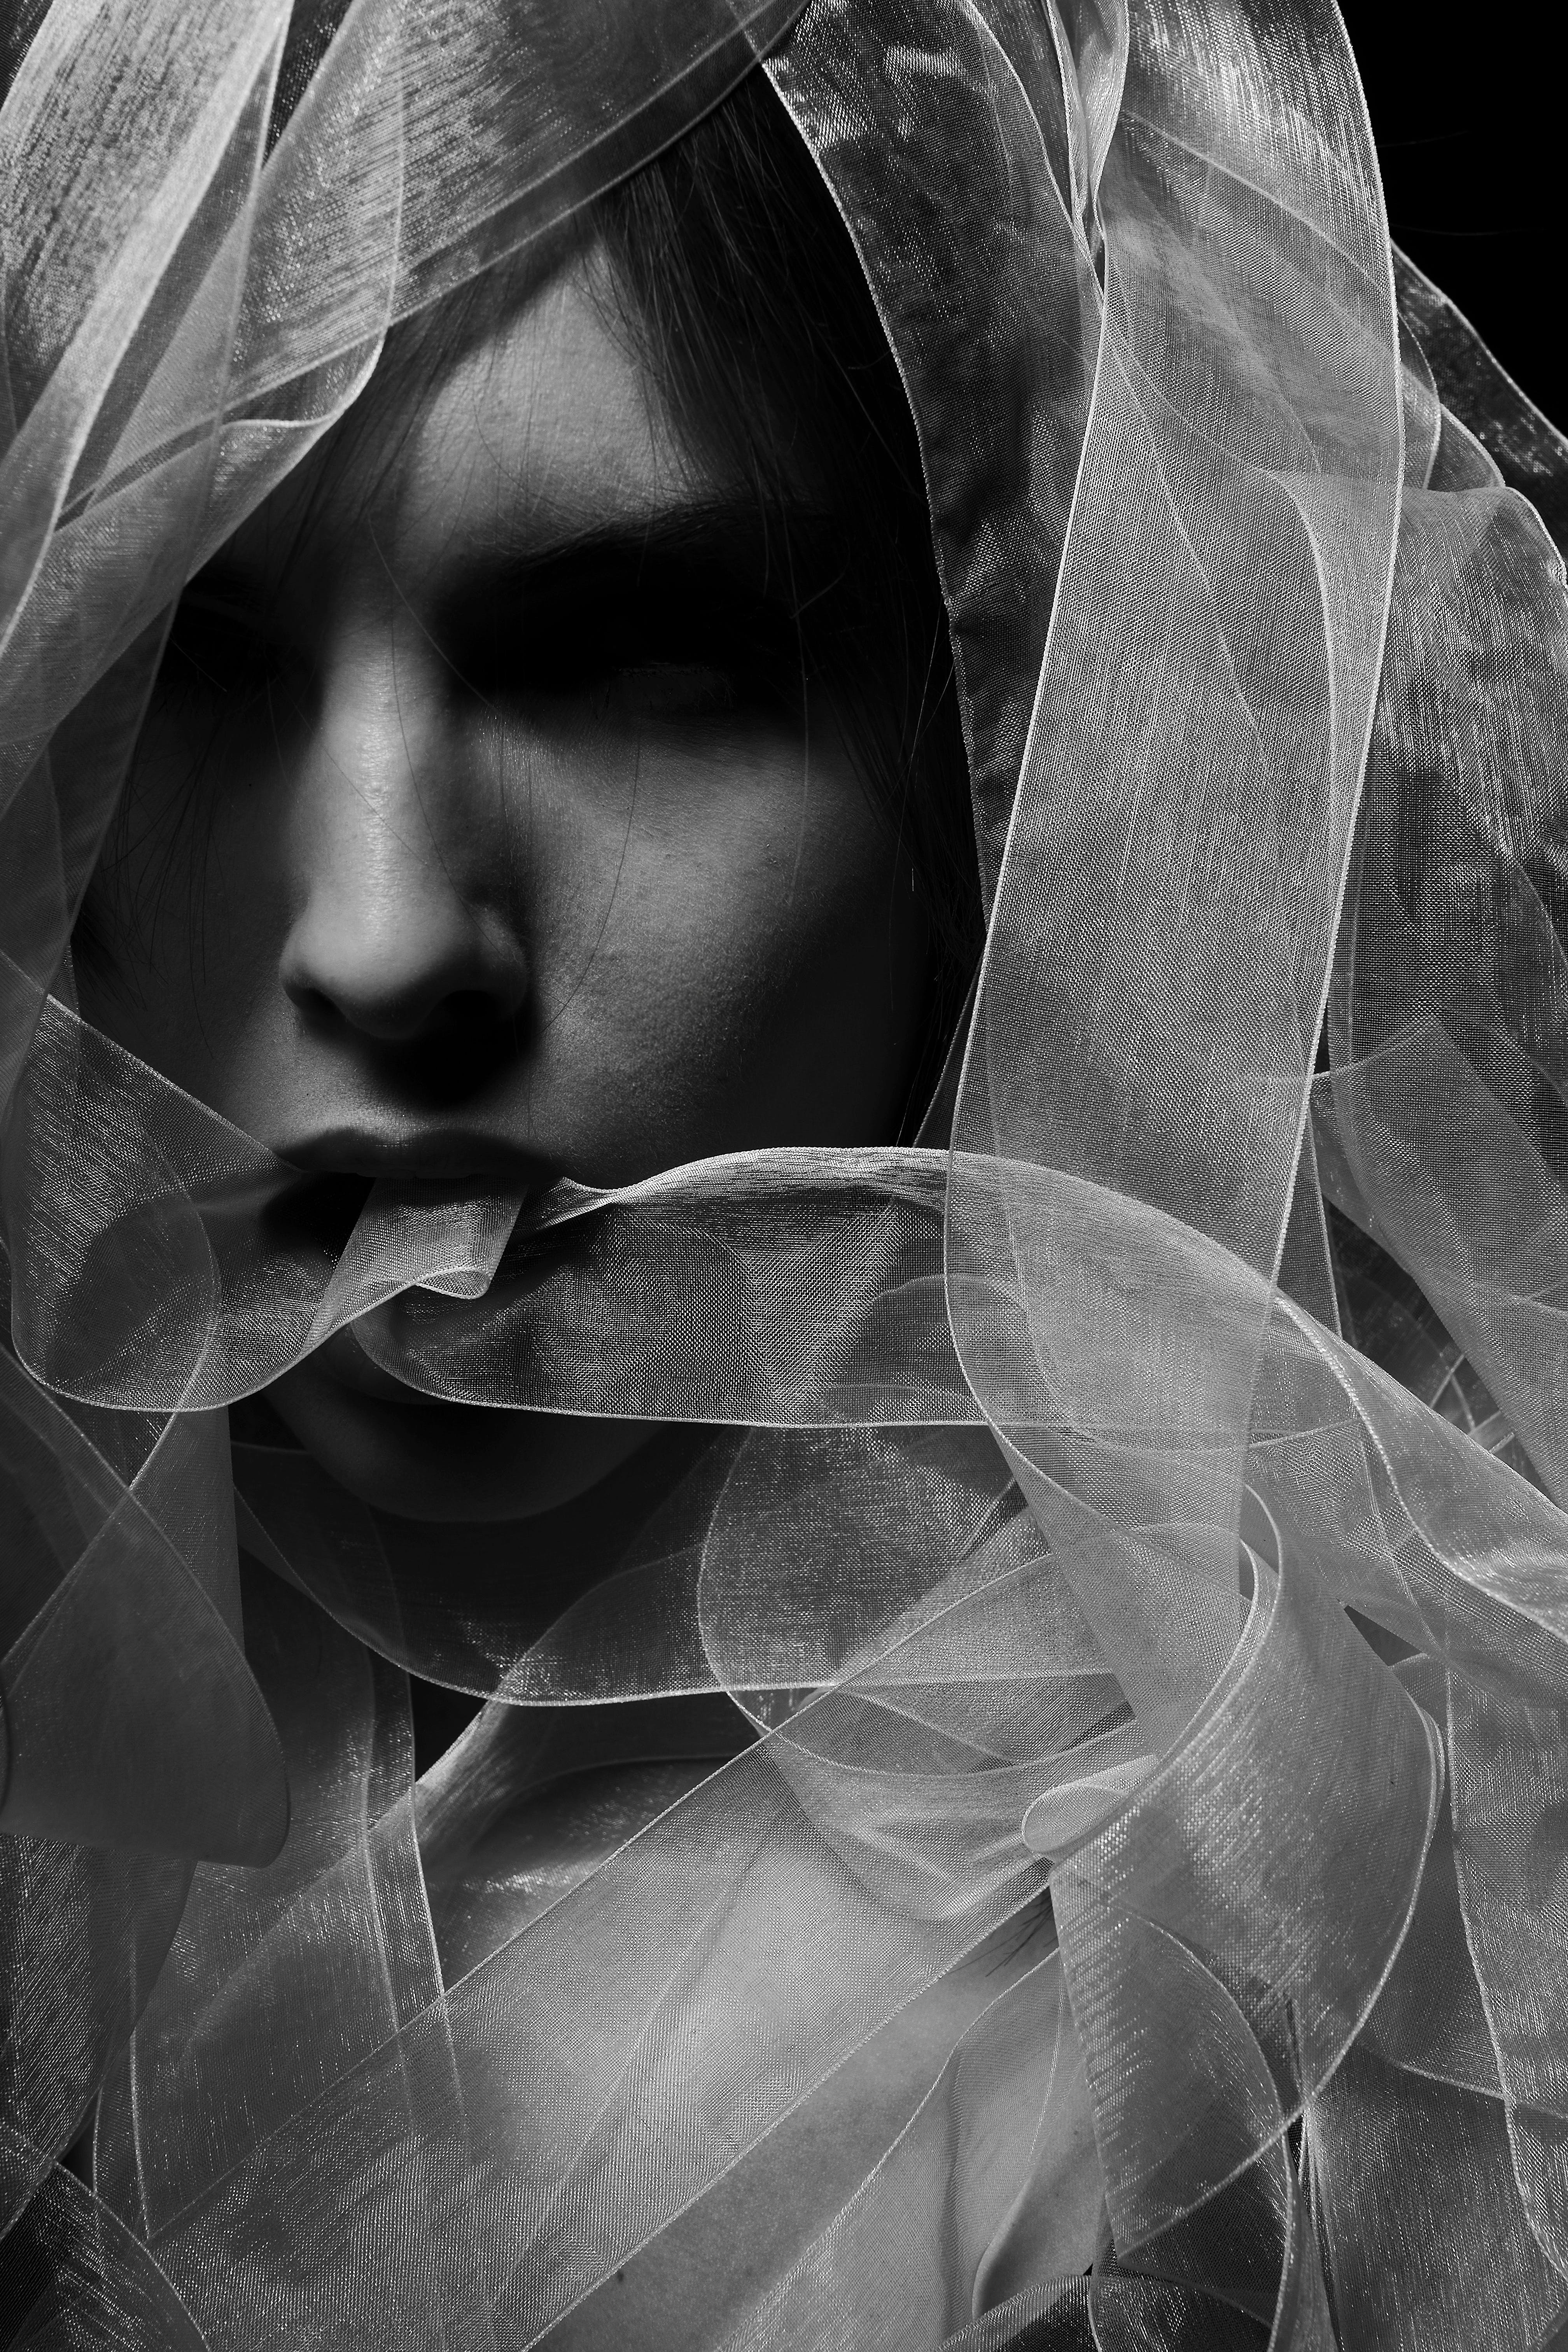 Grayscale Photography of Woman Wearing Veil